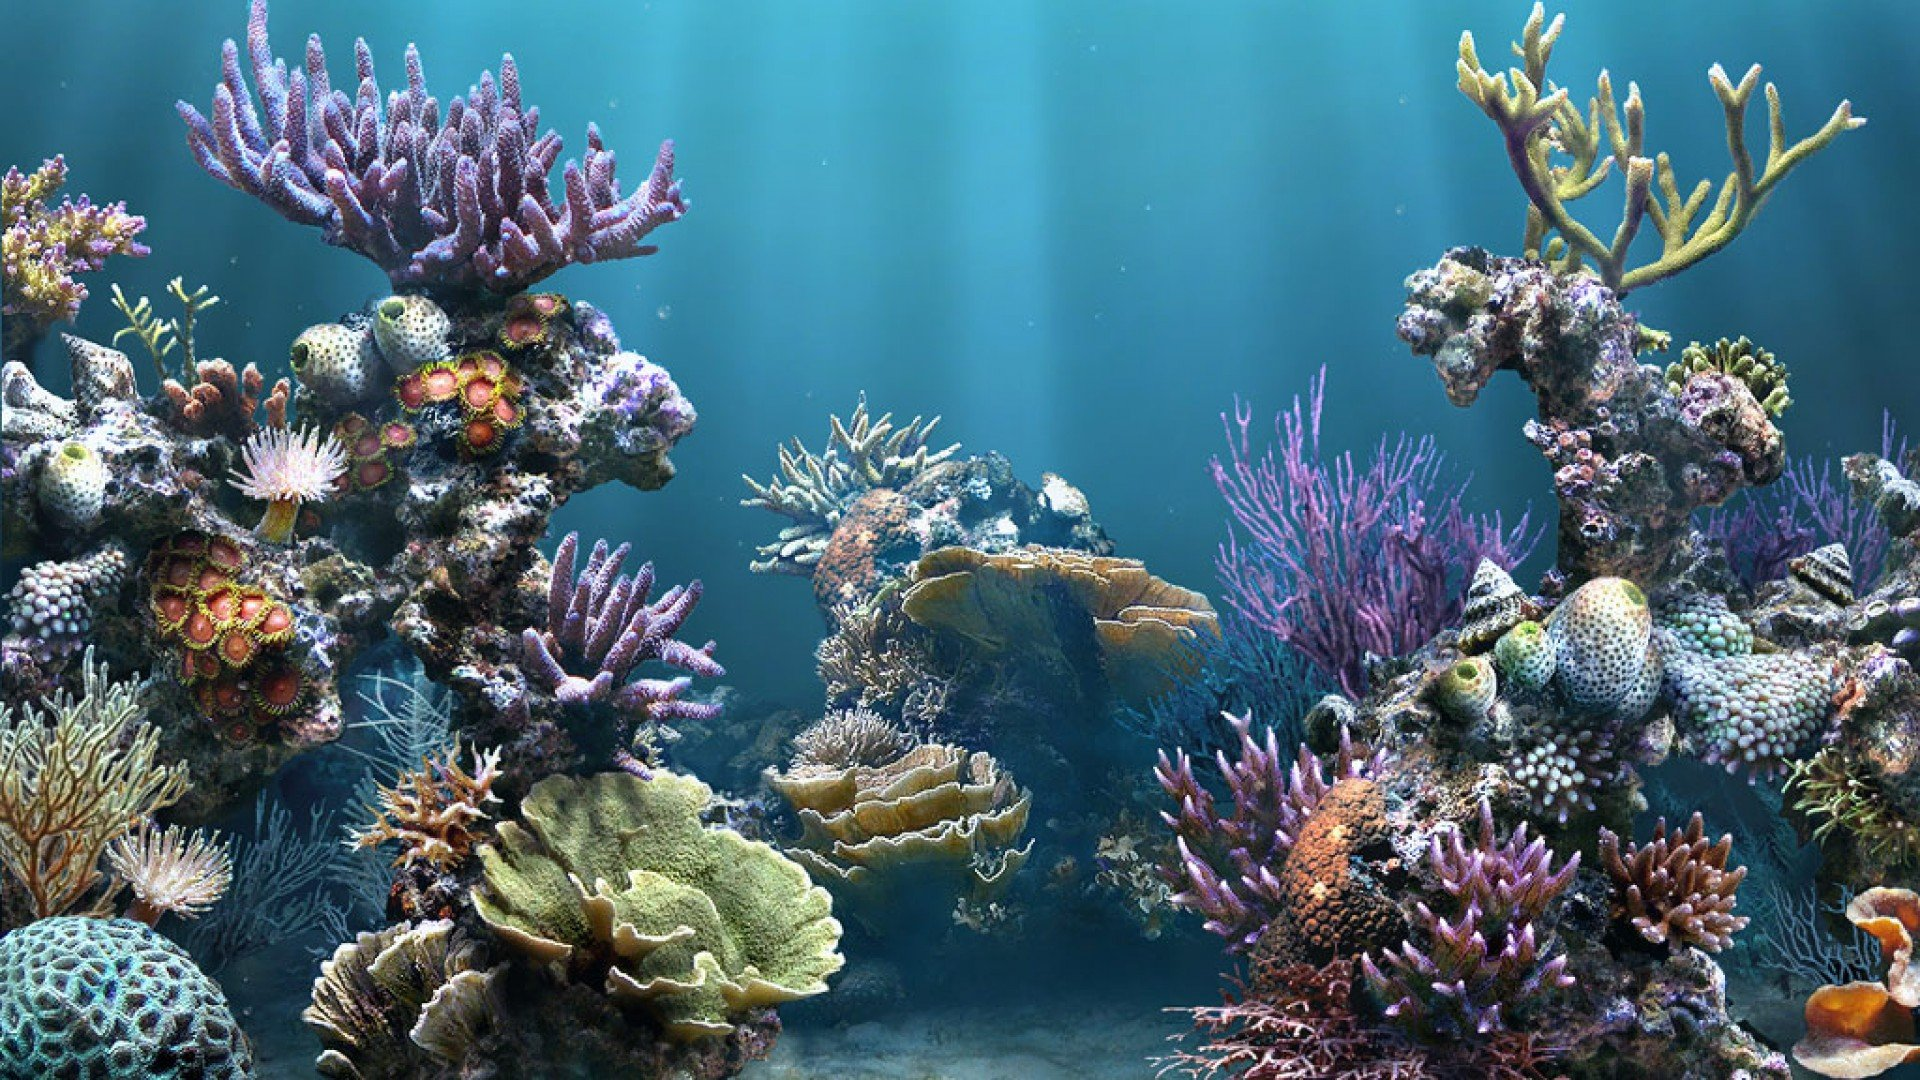 Aquarium screensaver fish tank 1080p hd - Aquarium Hd 1080p Wallpaper